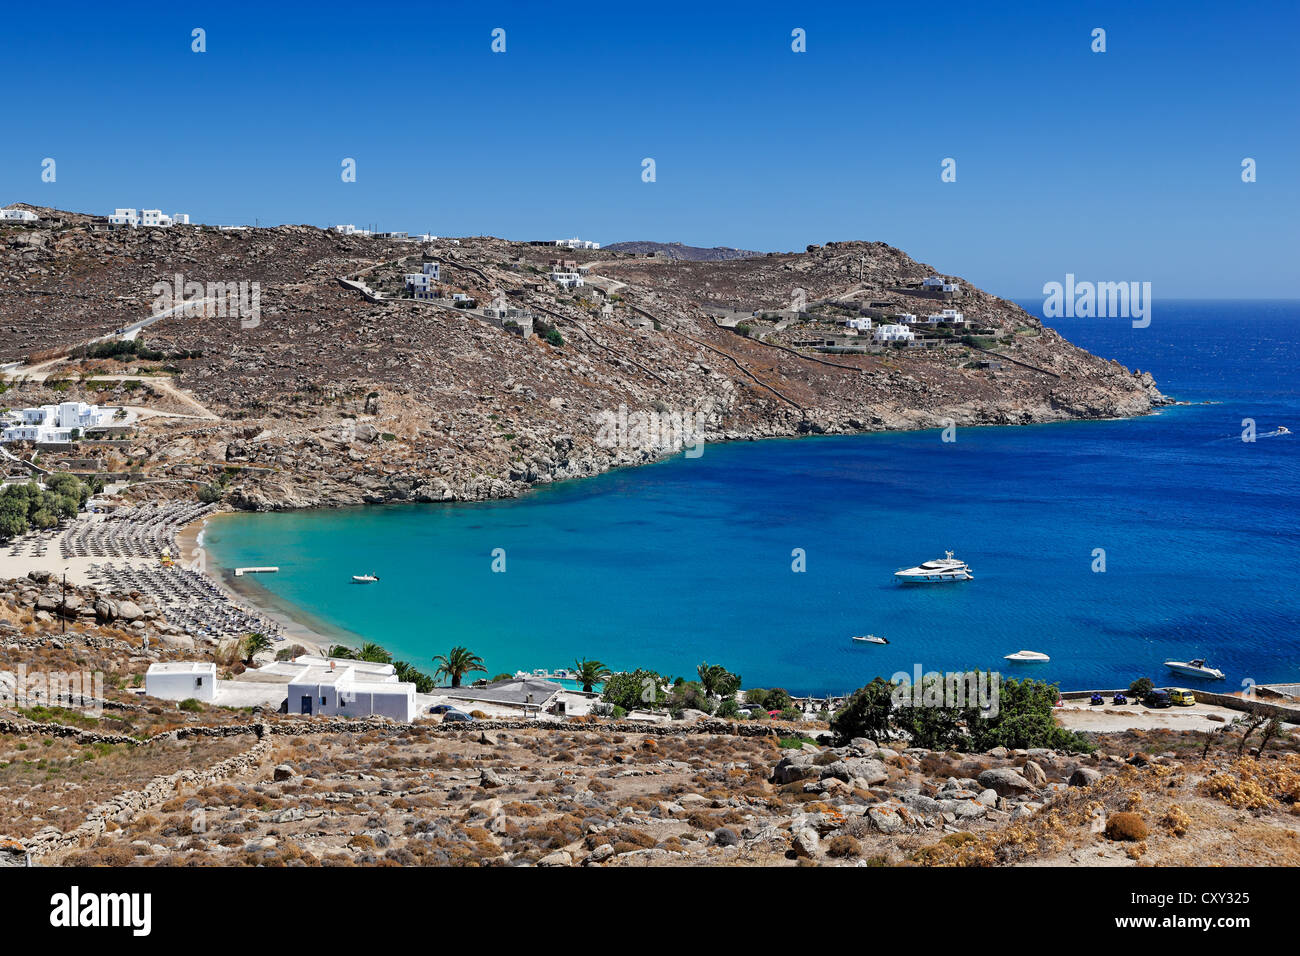 Super Paradise is one of the most famous beaches in Mykonos, Greece - Stock Image